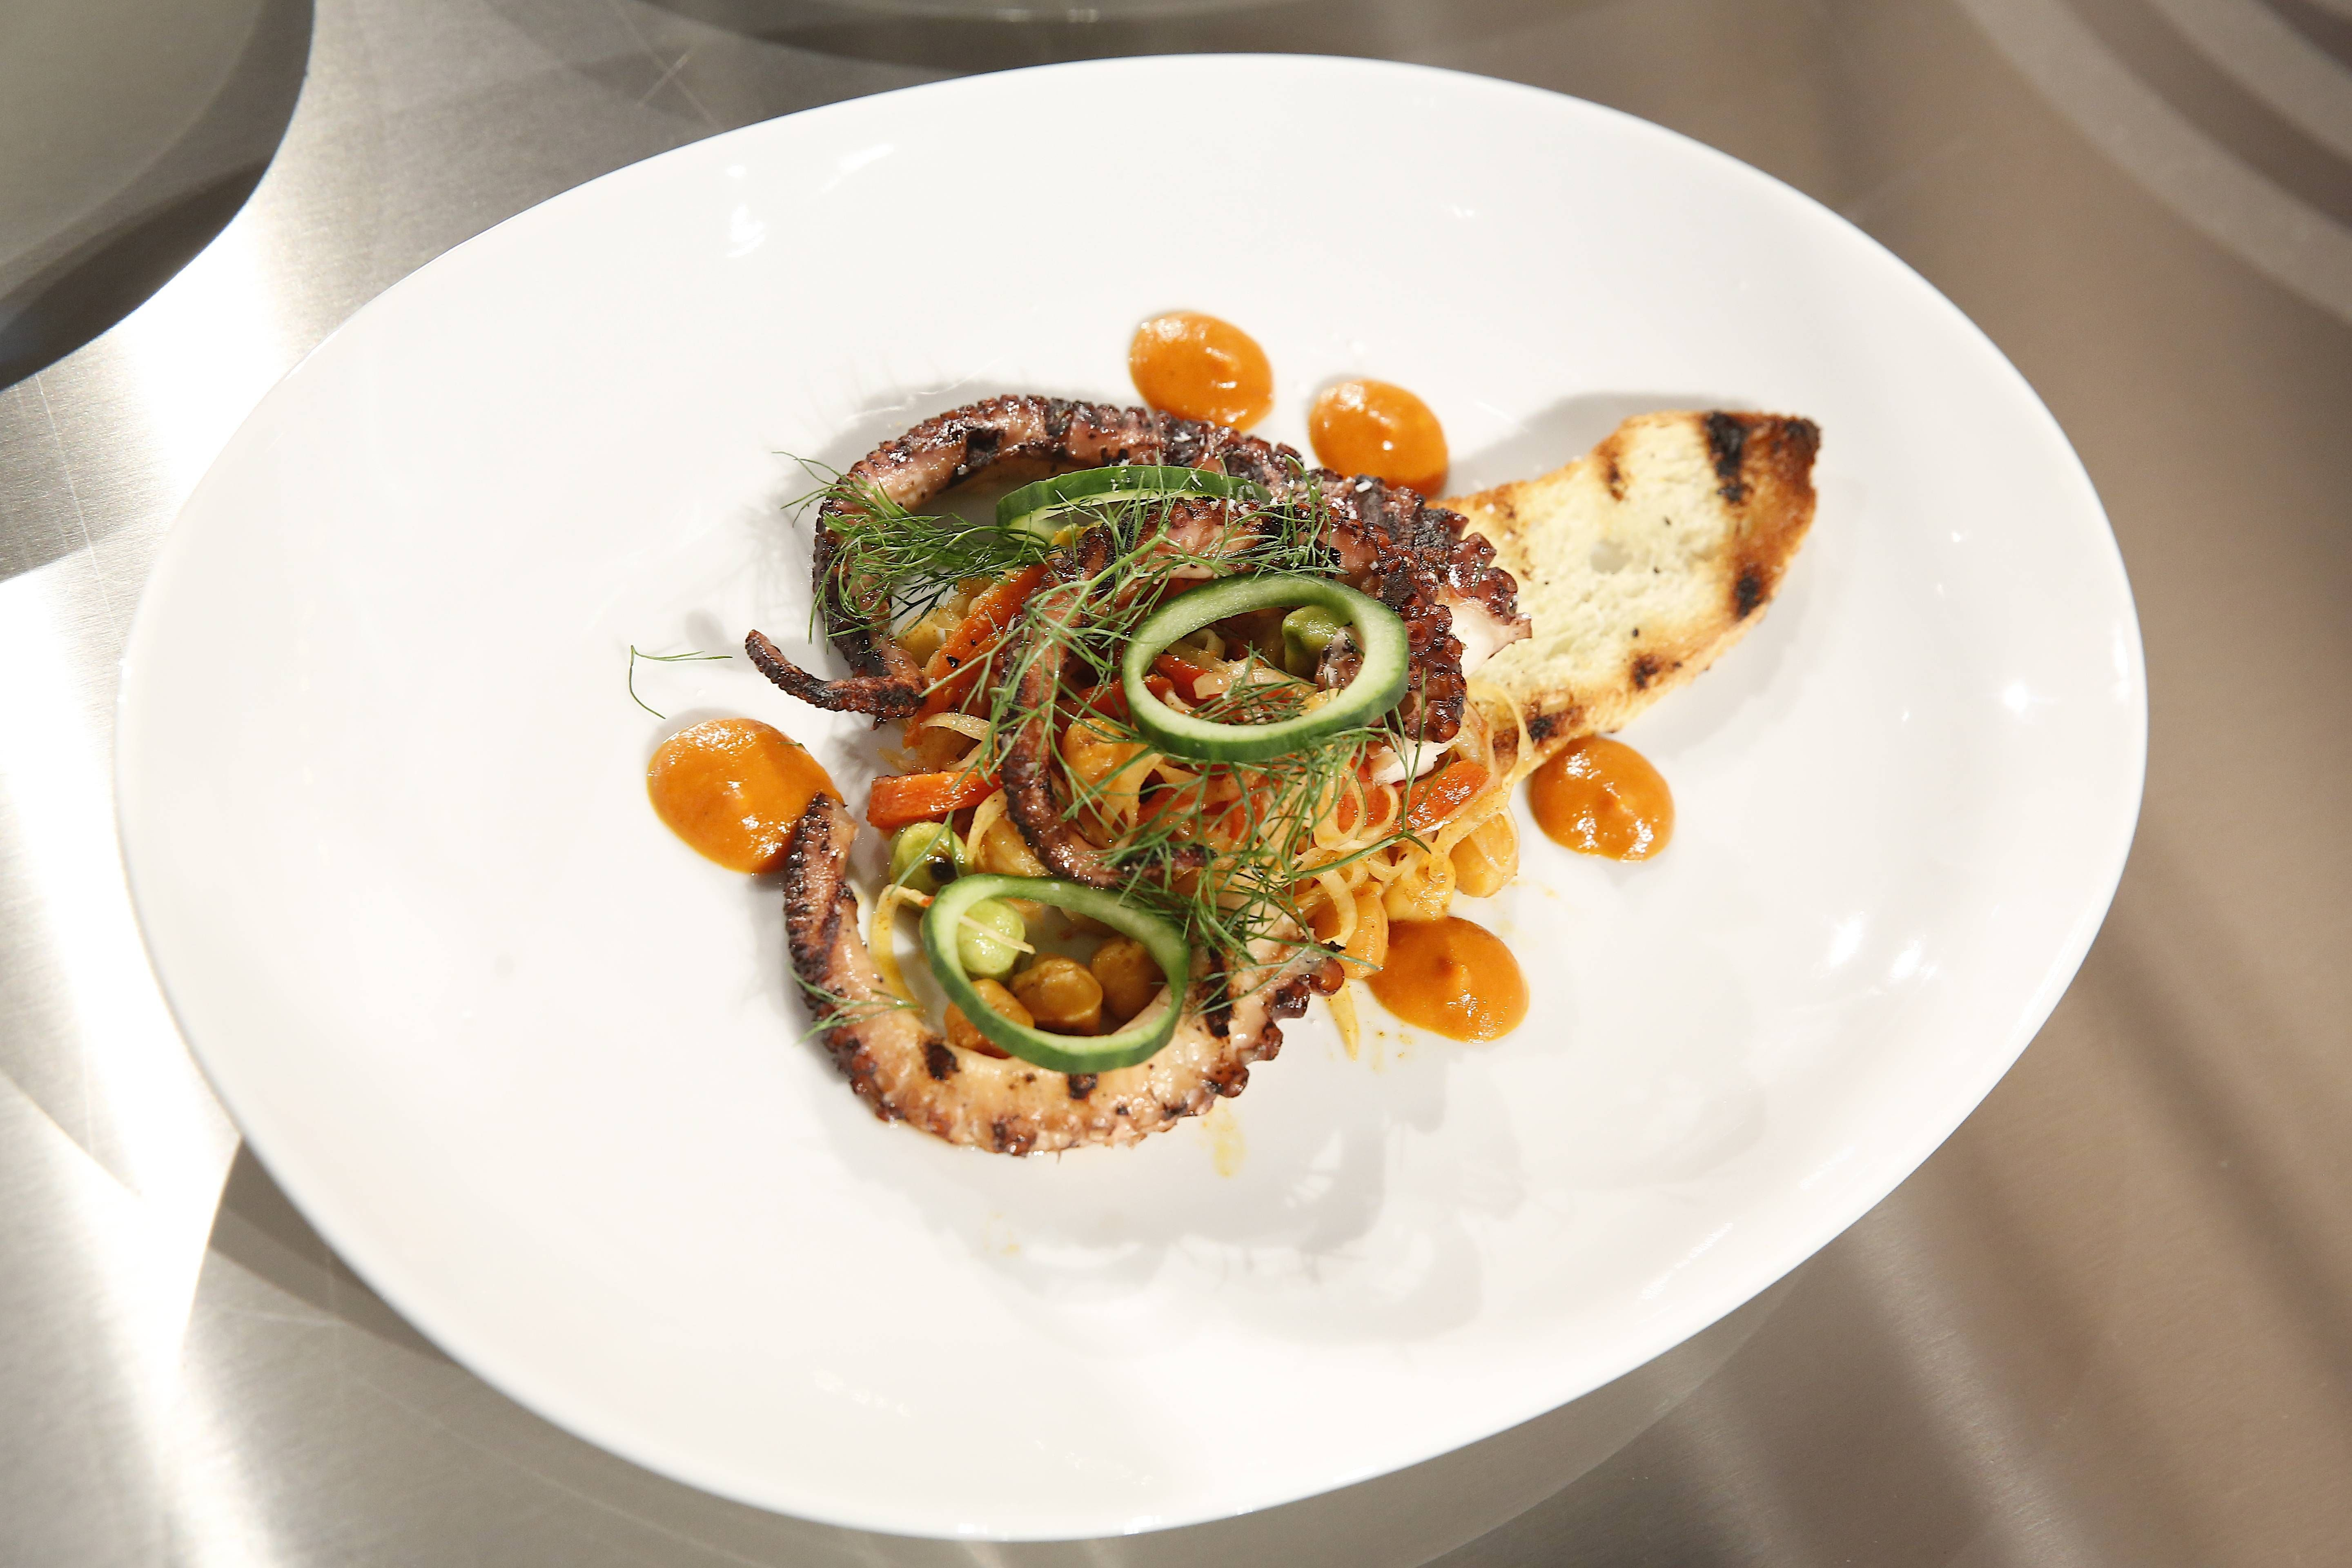 Elizabeth S Appetizer Grilled Octopus With A Warm Chickpea And Chorizo Salad Served Beside A